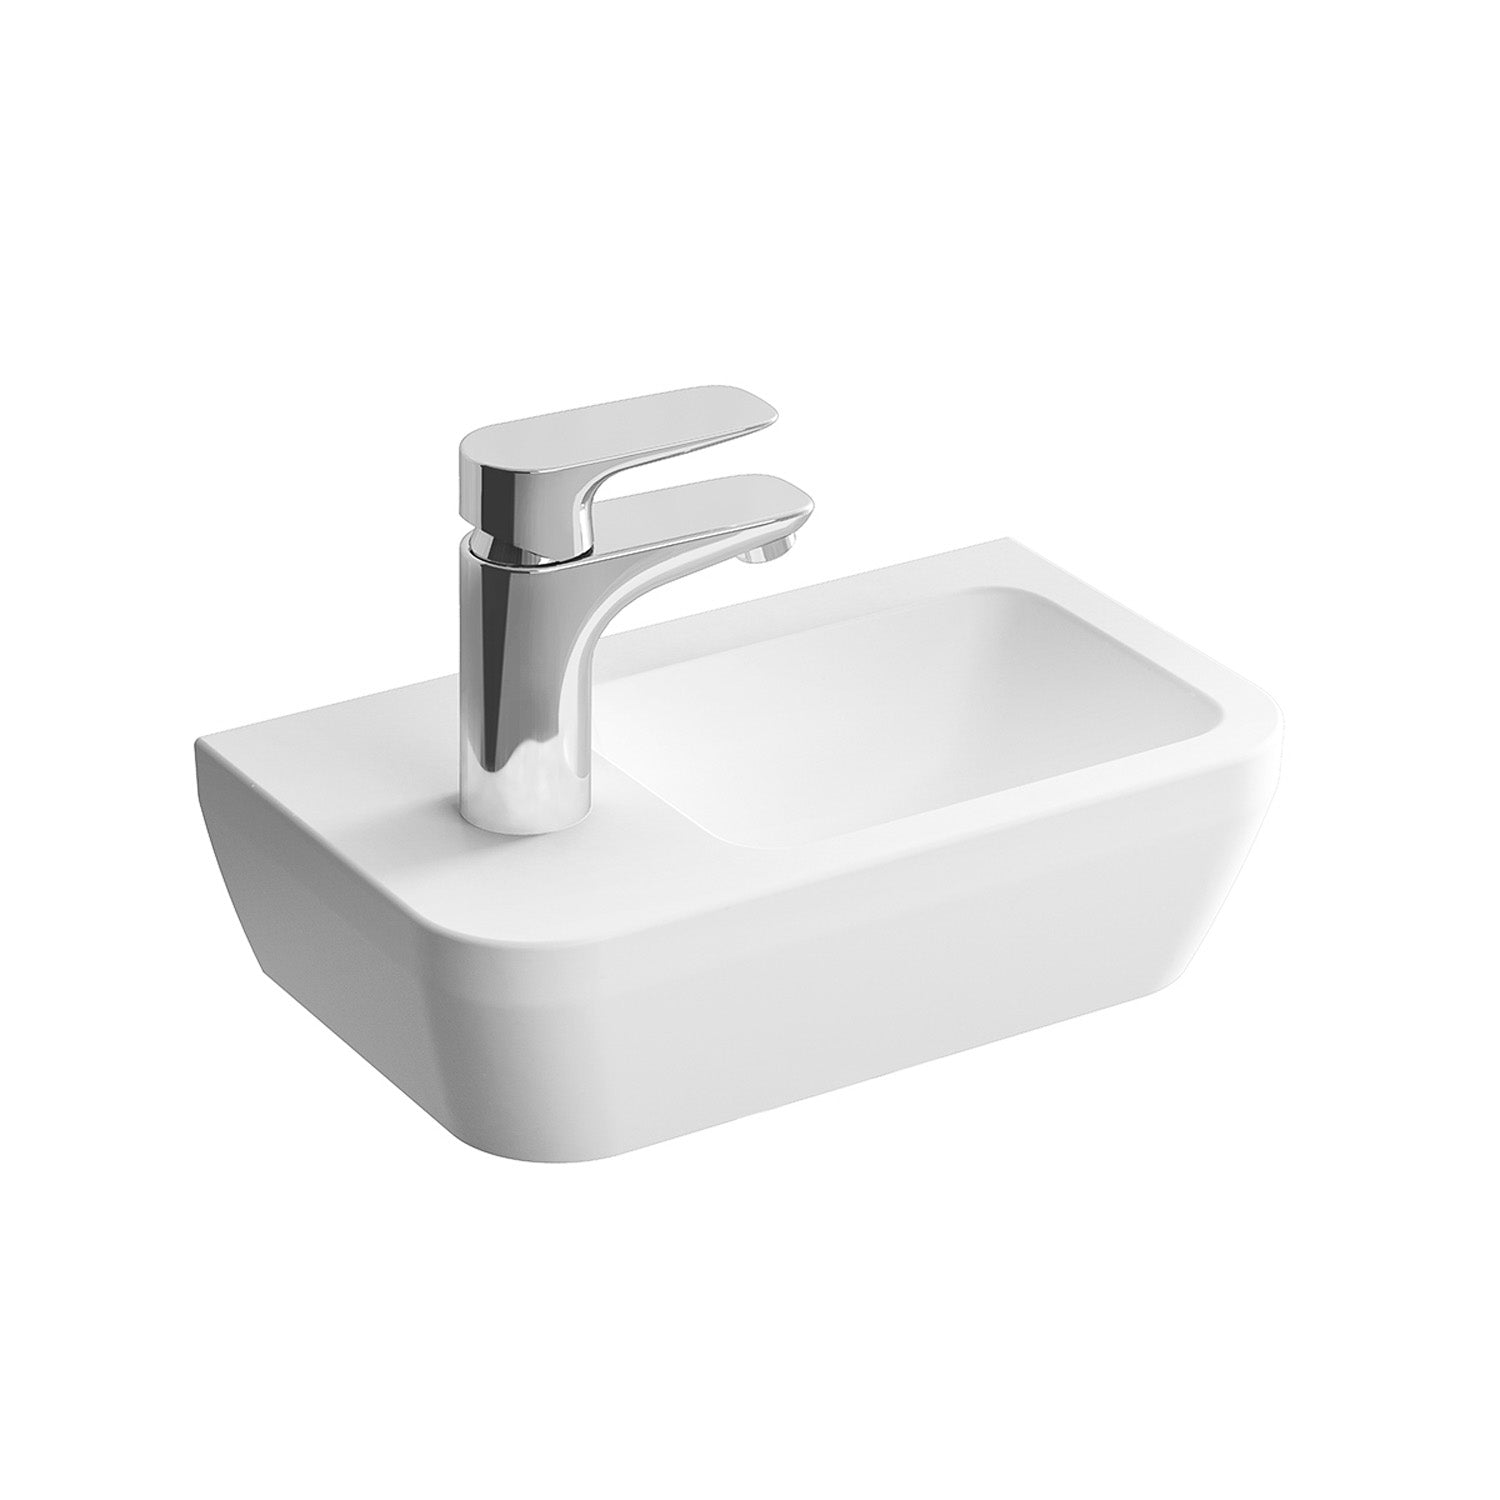 Left handed Consilio Handrinse Cloakroom Basin with one tap hole and an overflow on a white background